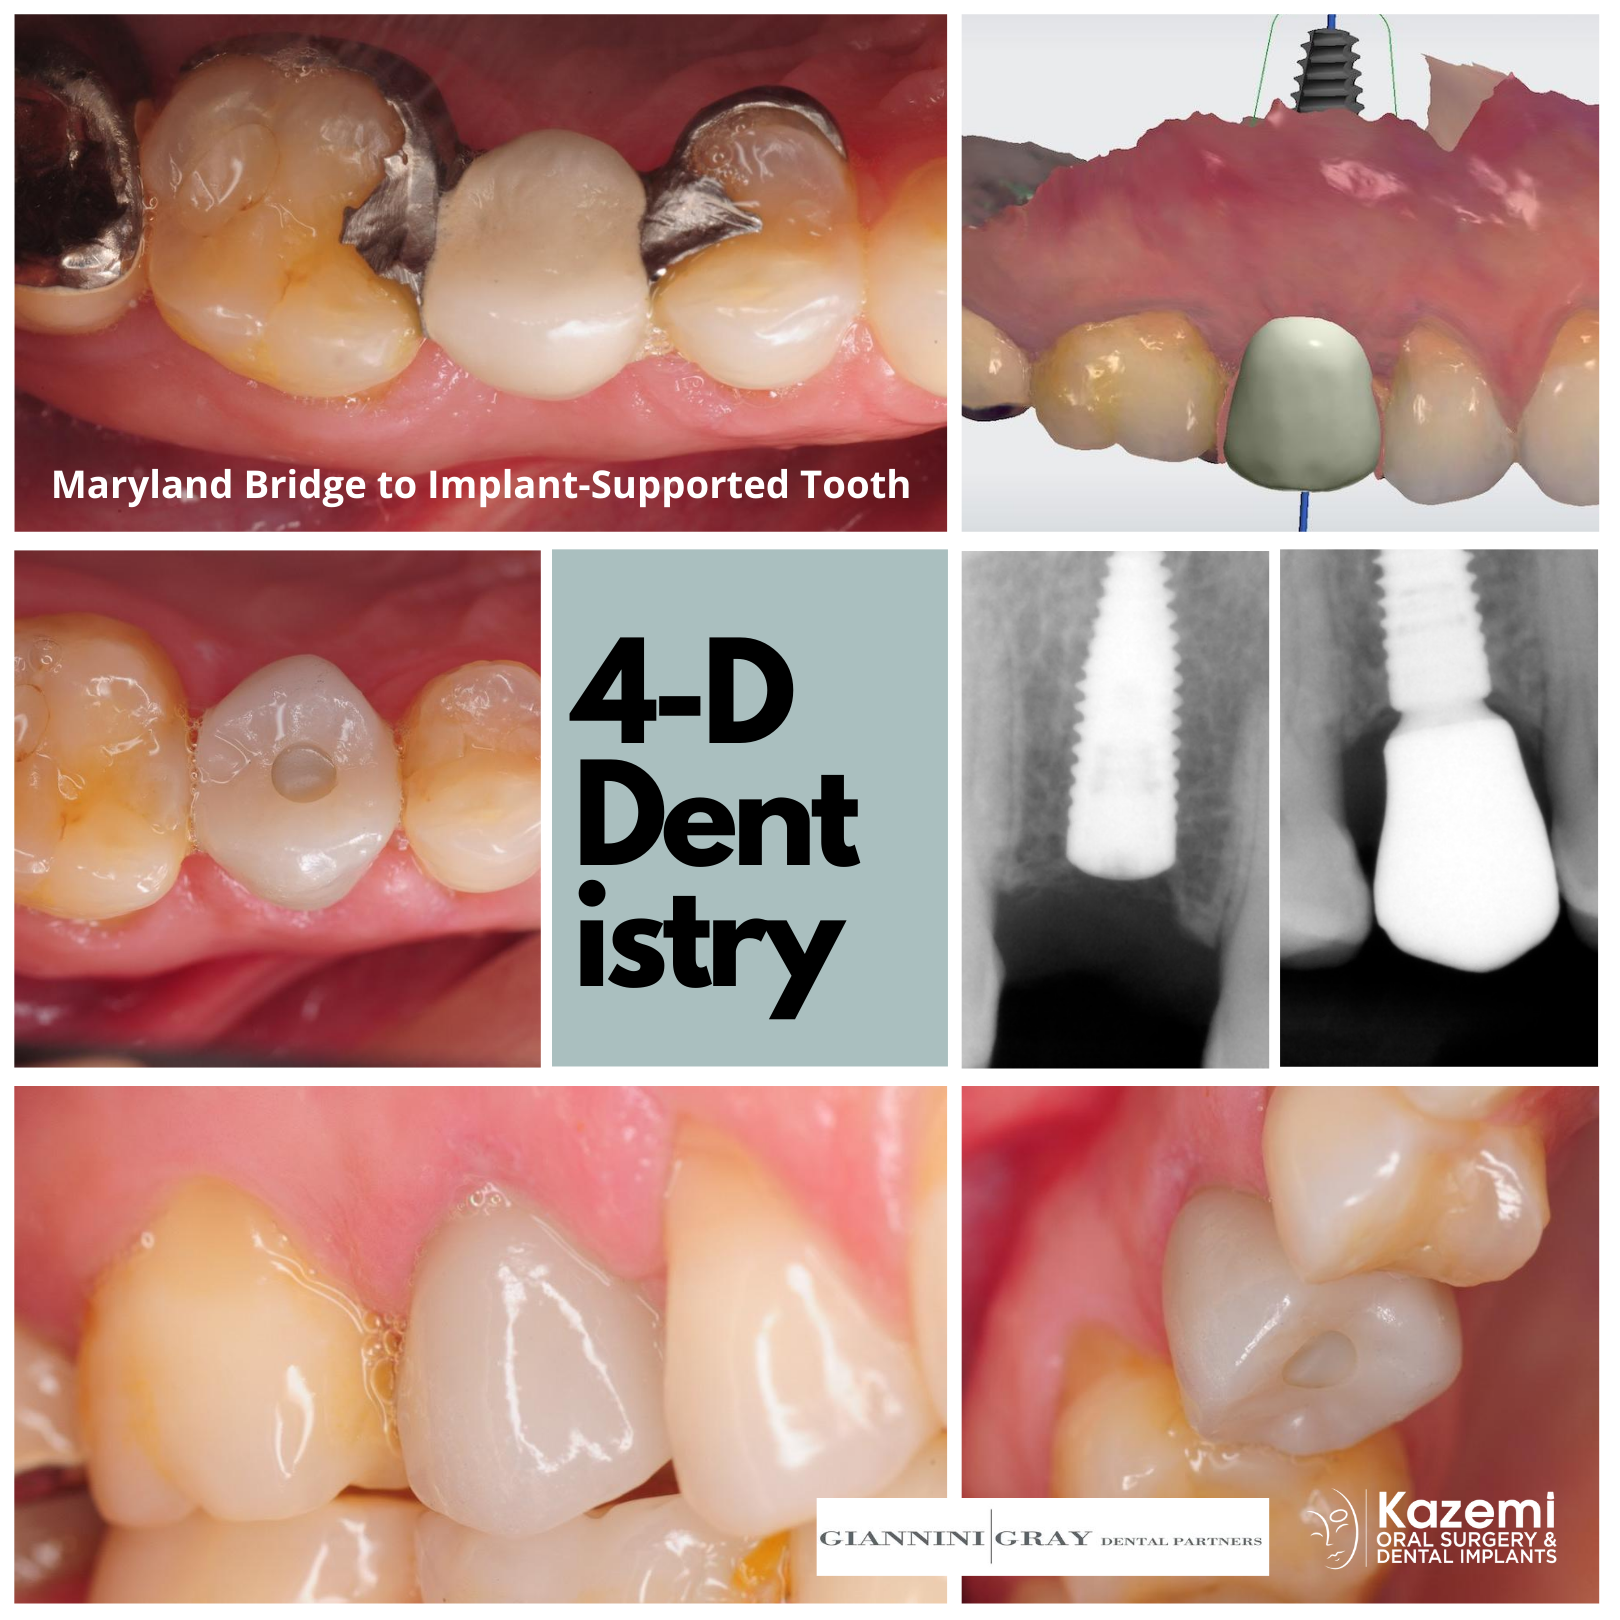 Maryland-bridge-to-dental-implant-supported-tooth-4-dimensional-dentistry-kazemi-oral-surgery